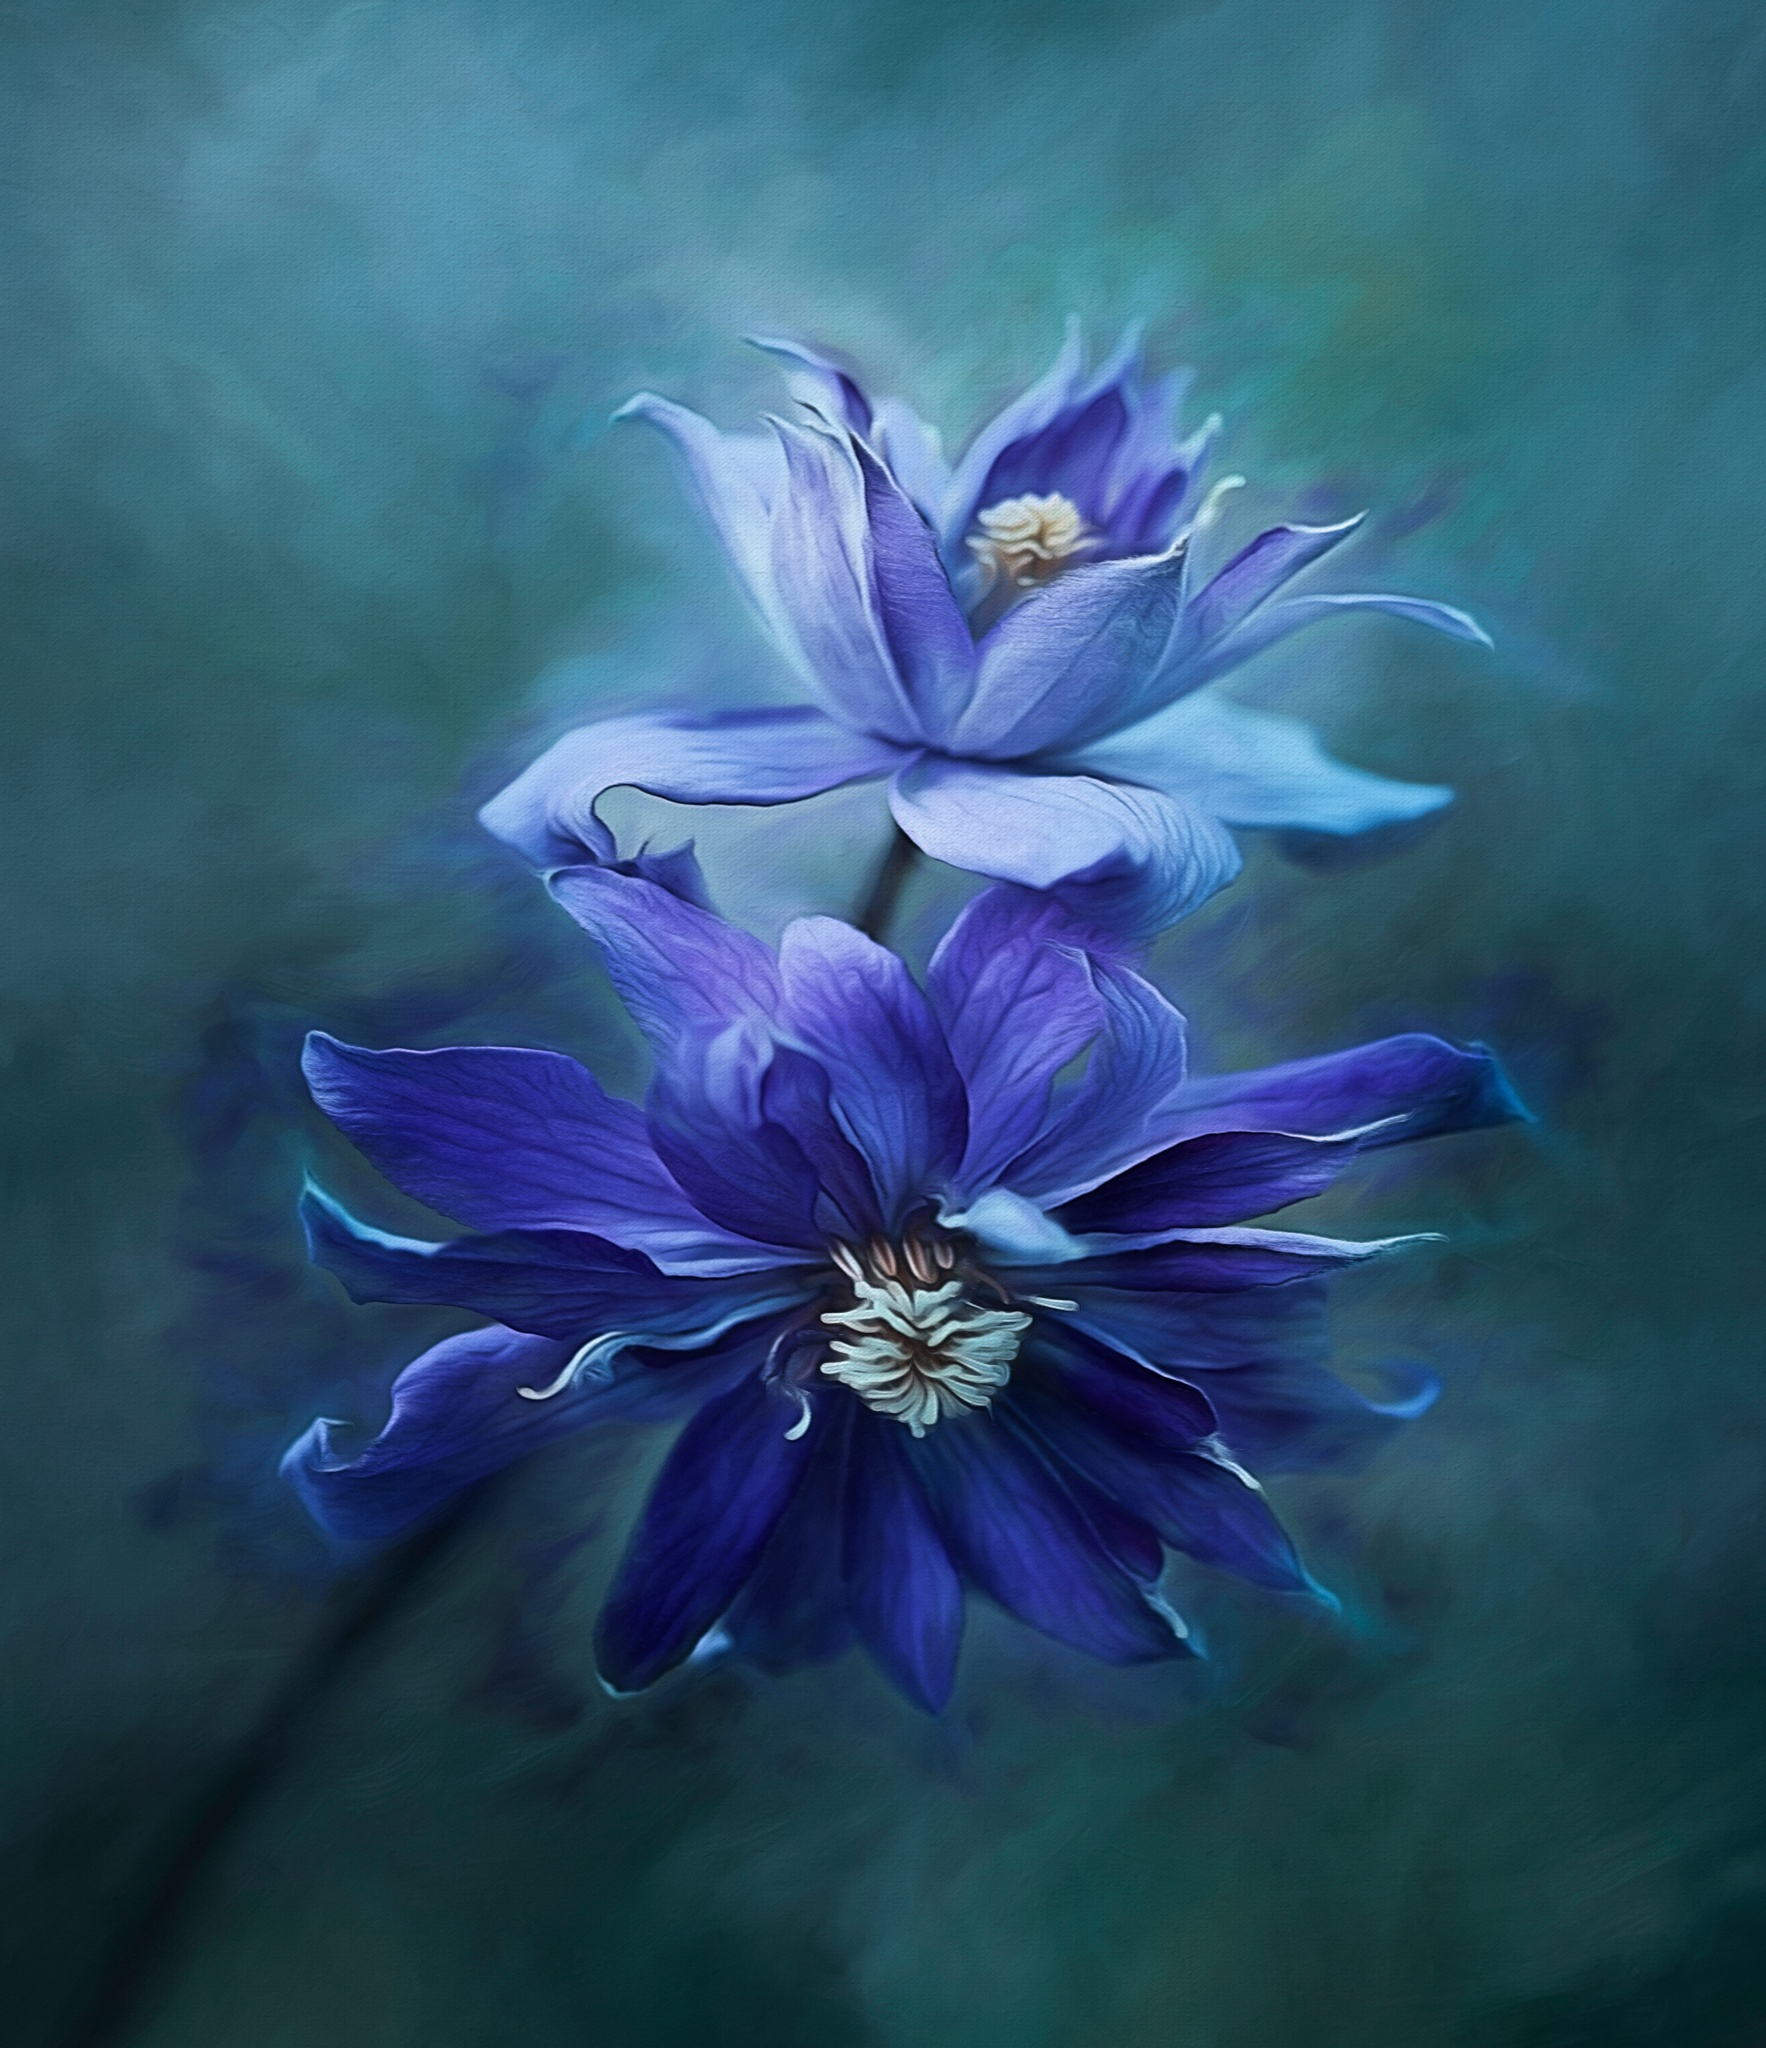 Clematis Blue by clinthudson